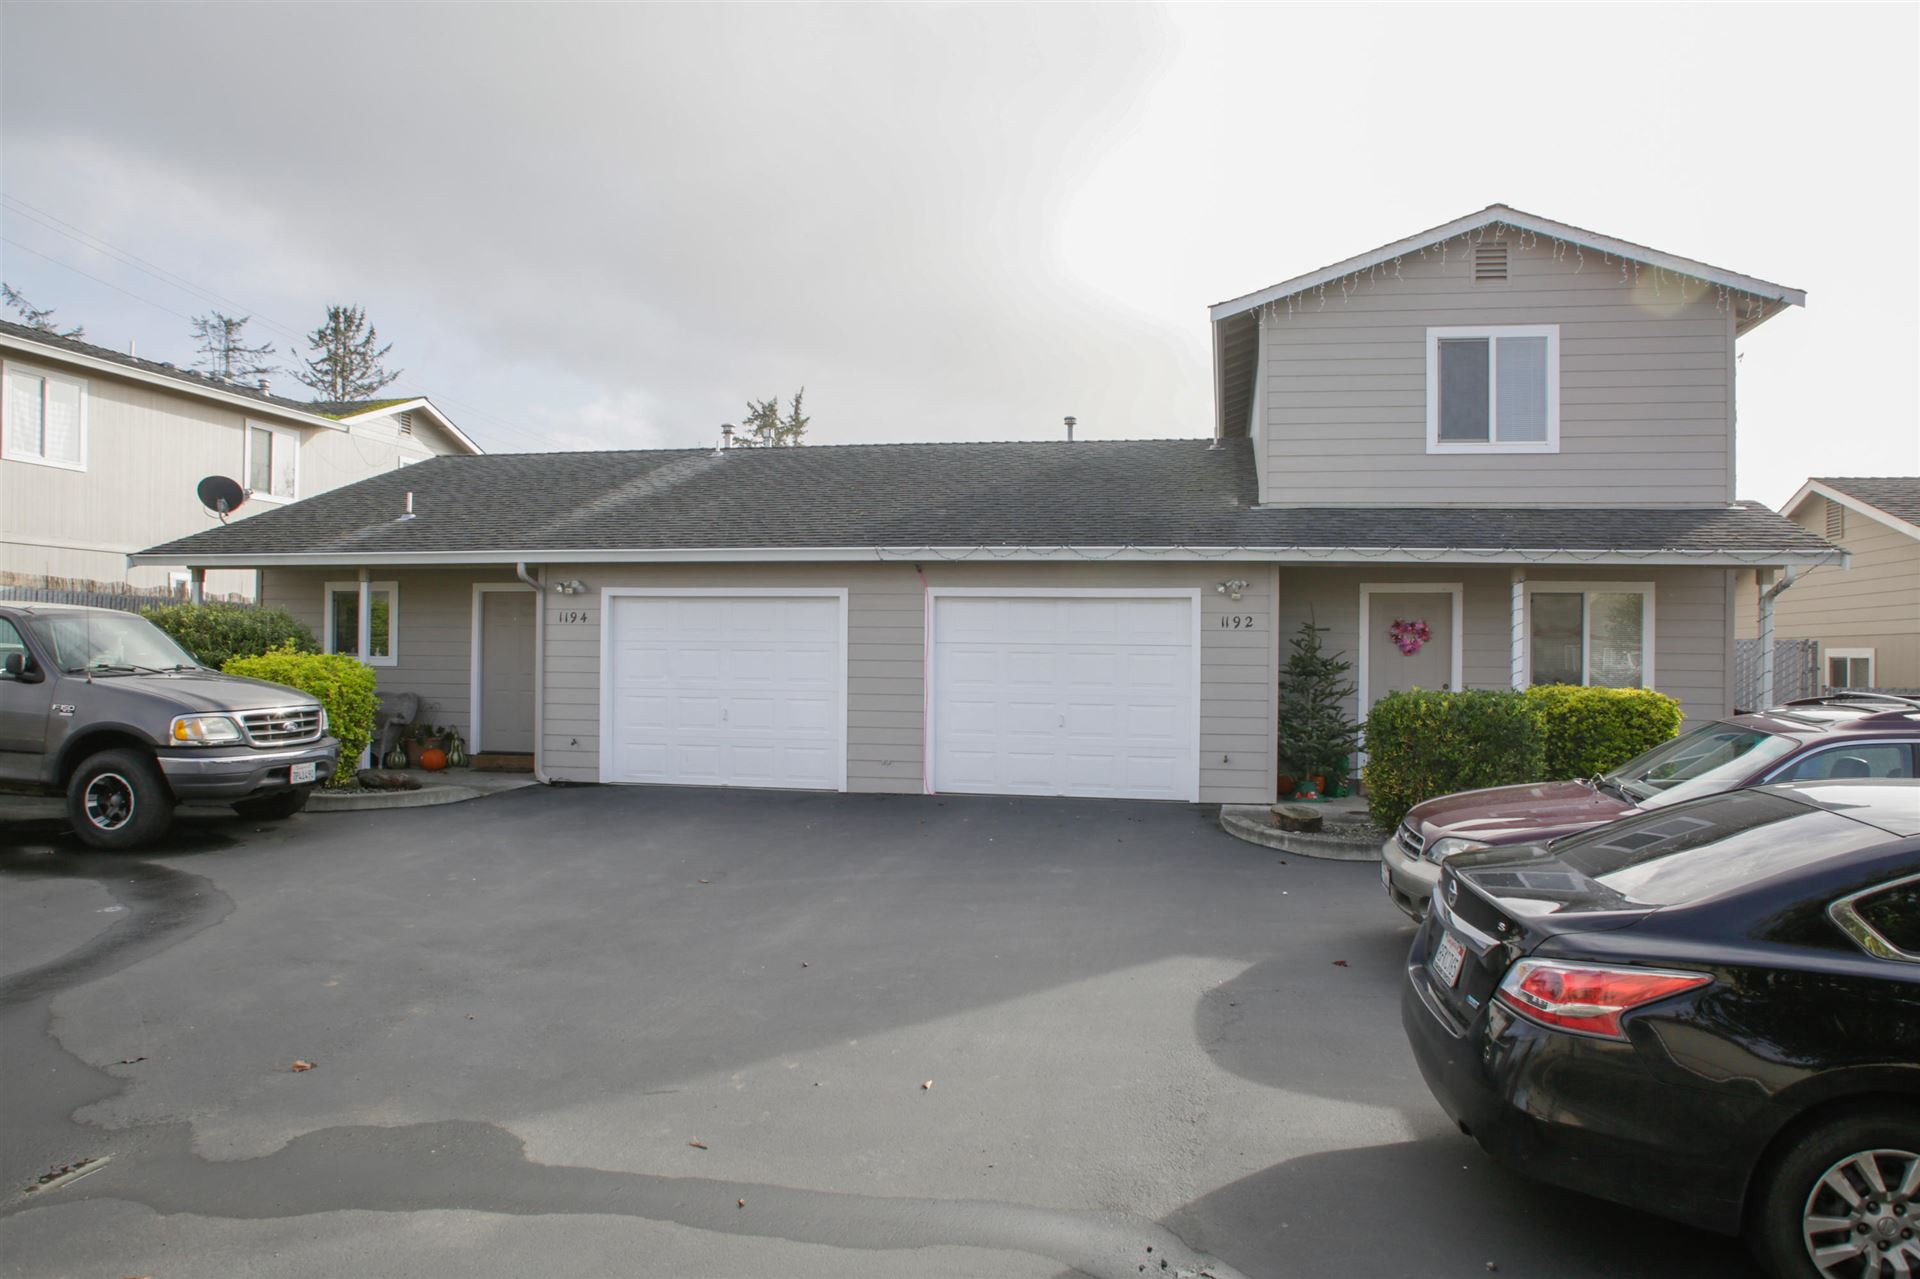 1192 Chance Lane, McKinleyville, CA 95519 - MLS#: 255528